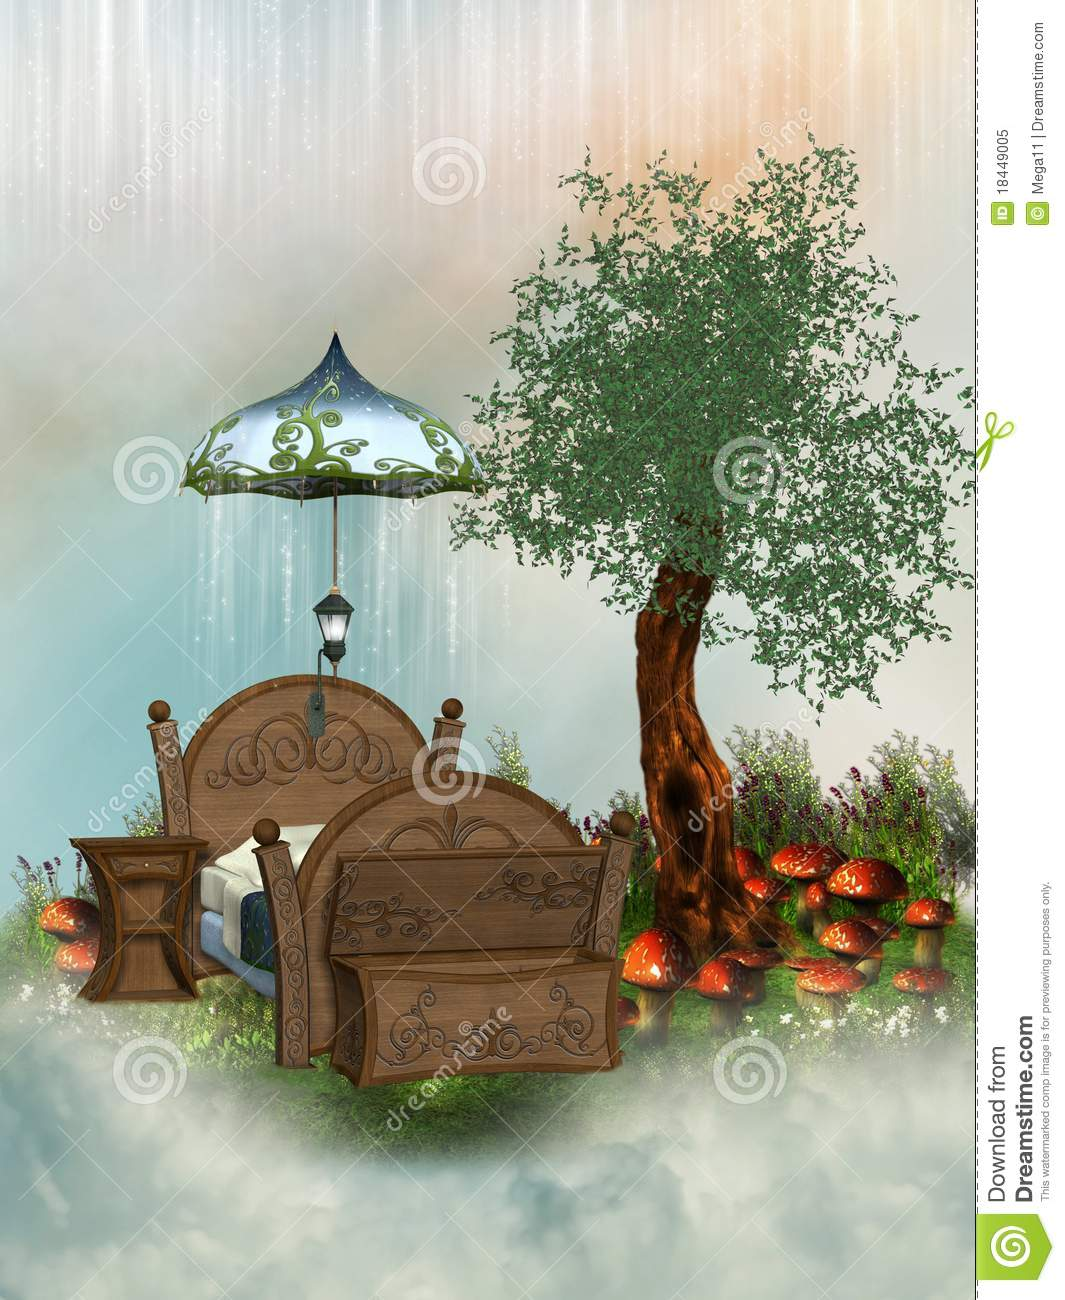 Fairy bed stock illustration image of clouds golden for Fairytale beds